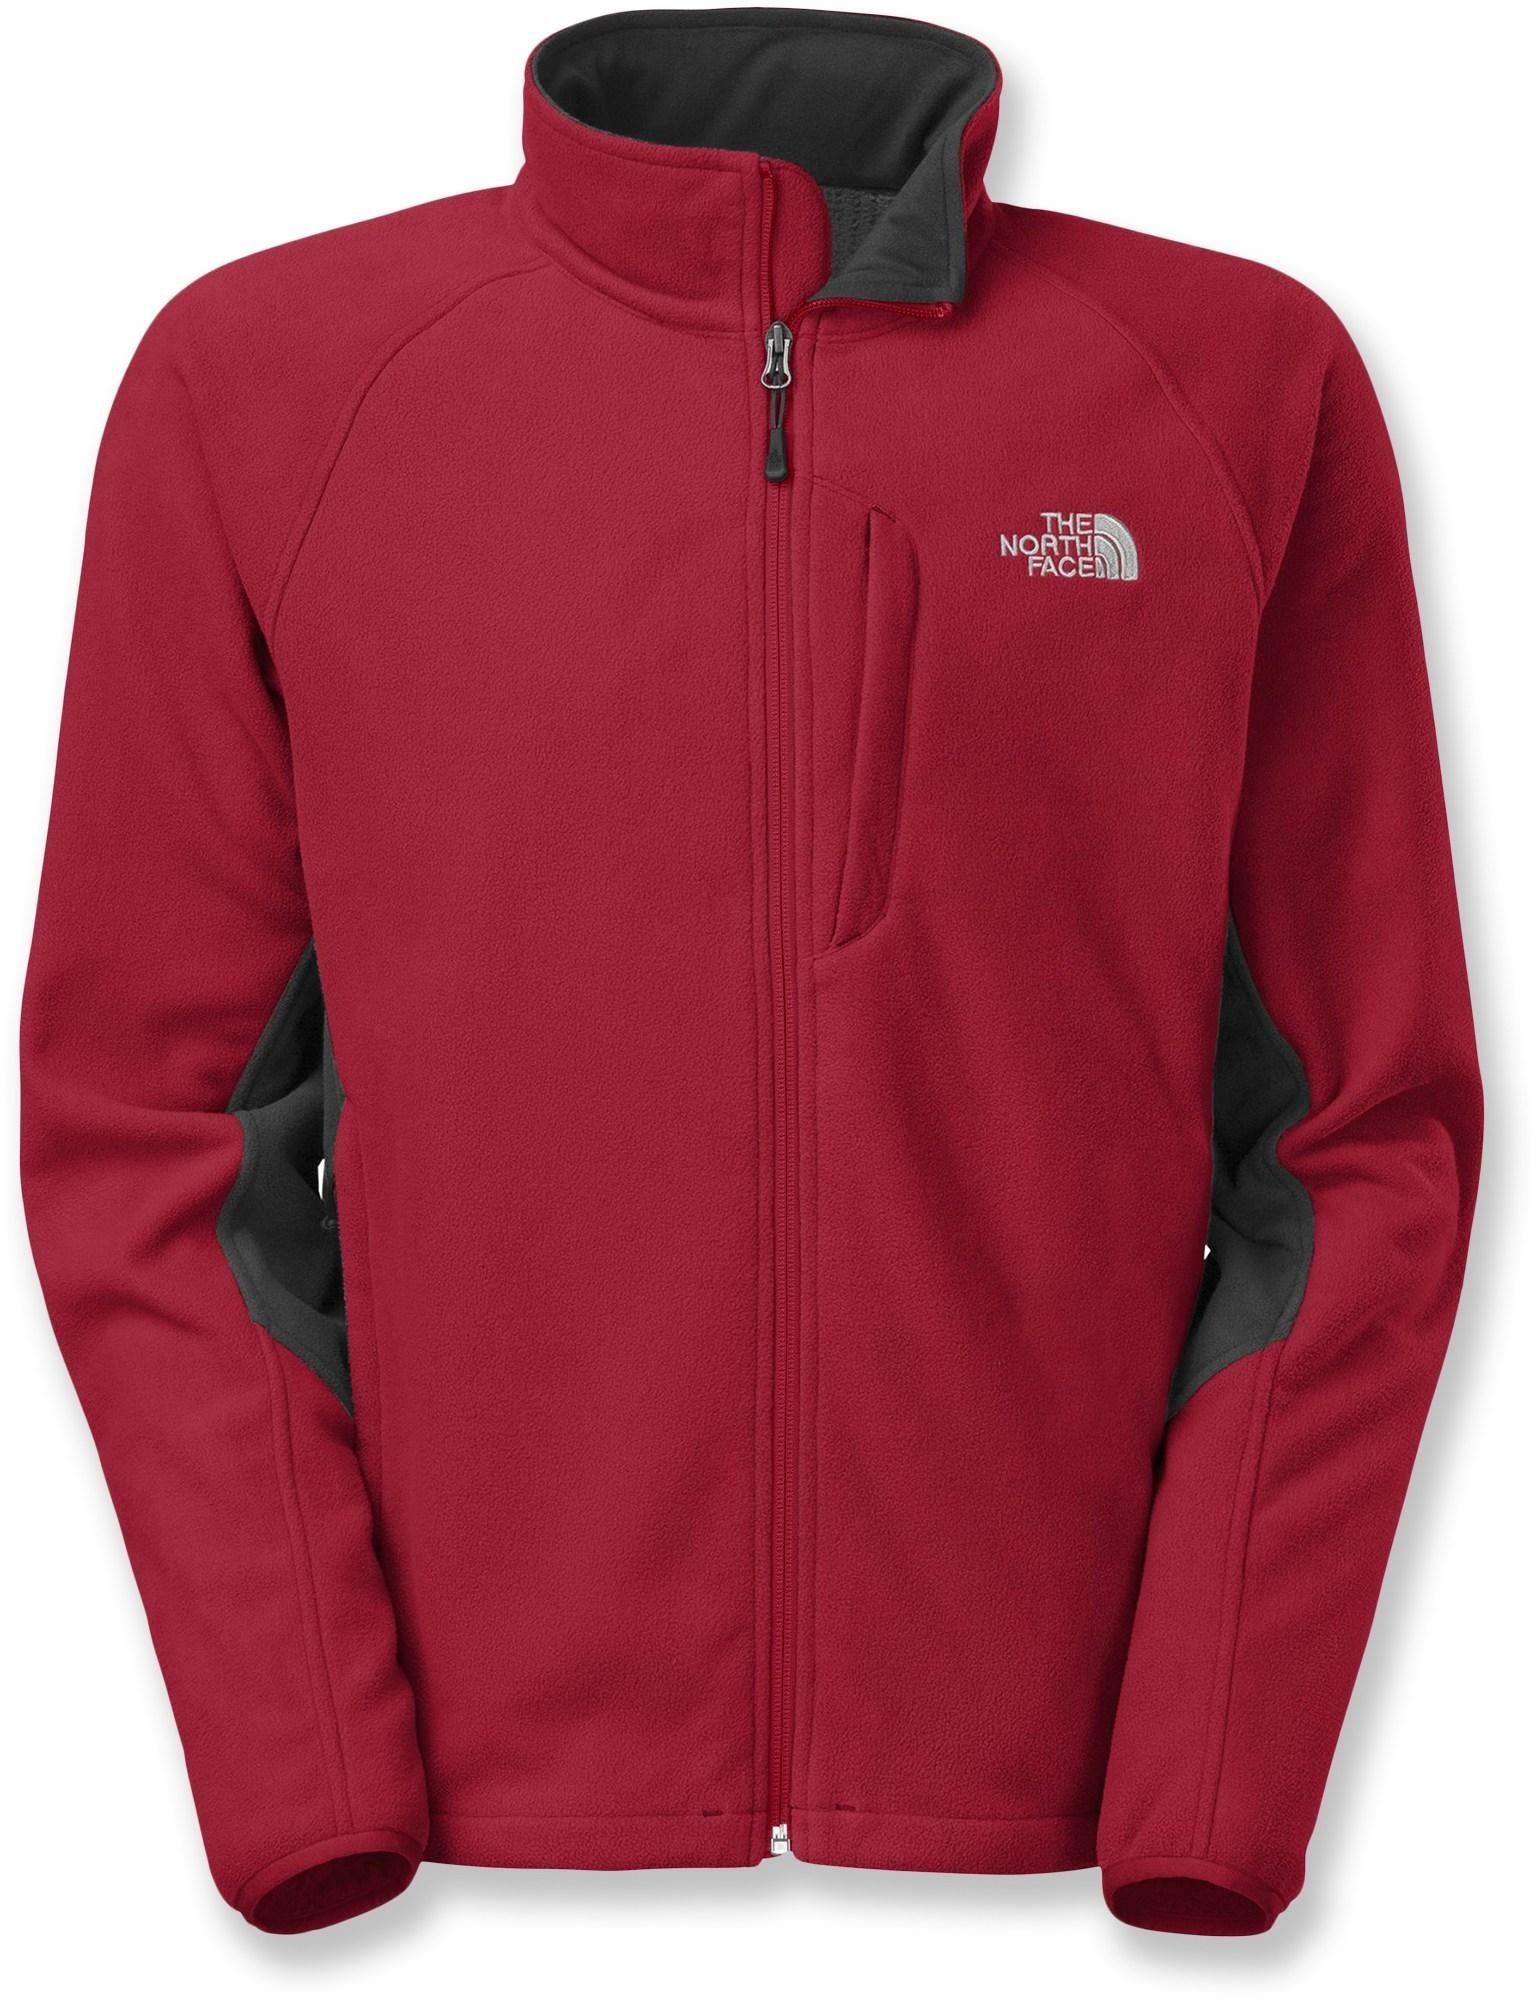 Pin By Laura J On Gifts For Him North Face Mens Jackets The North Face [ 2000 x 1536 Pixel ]